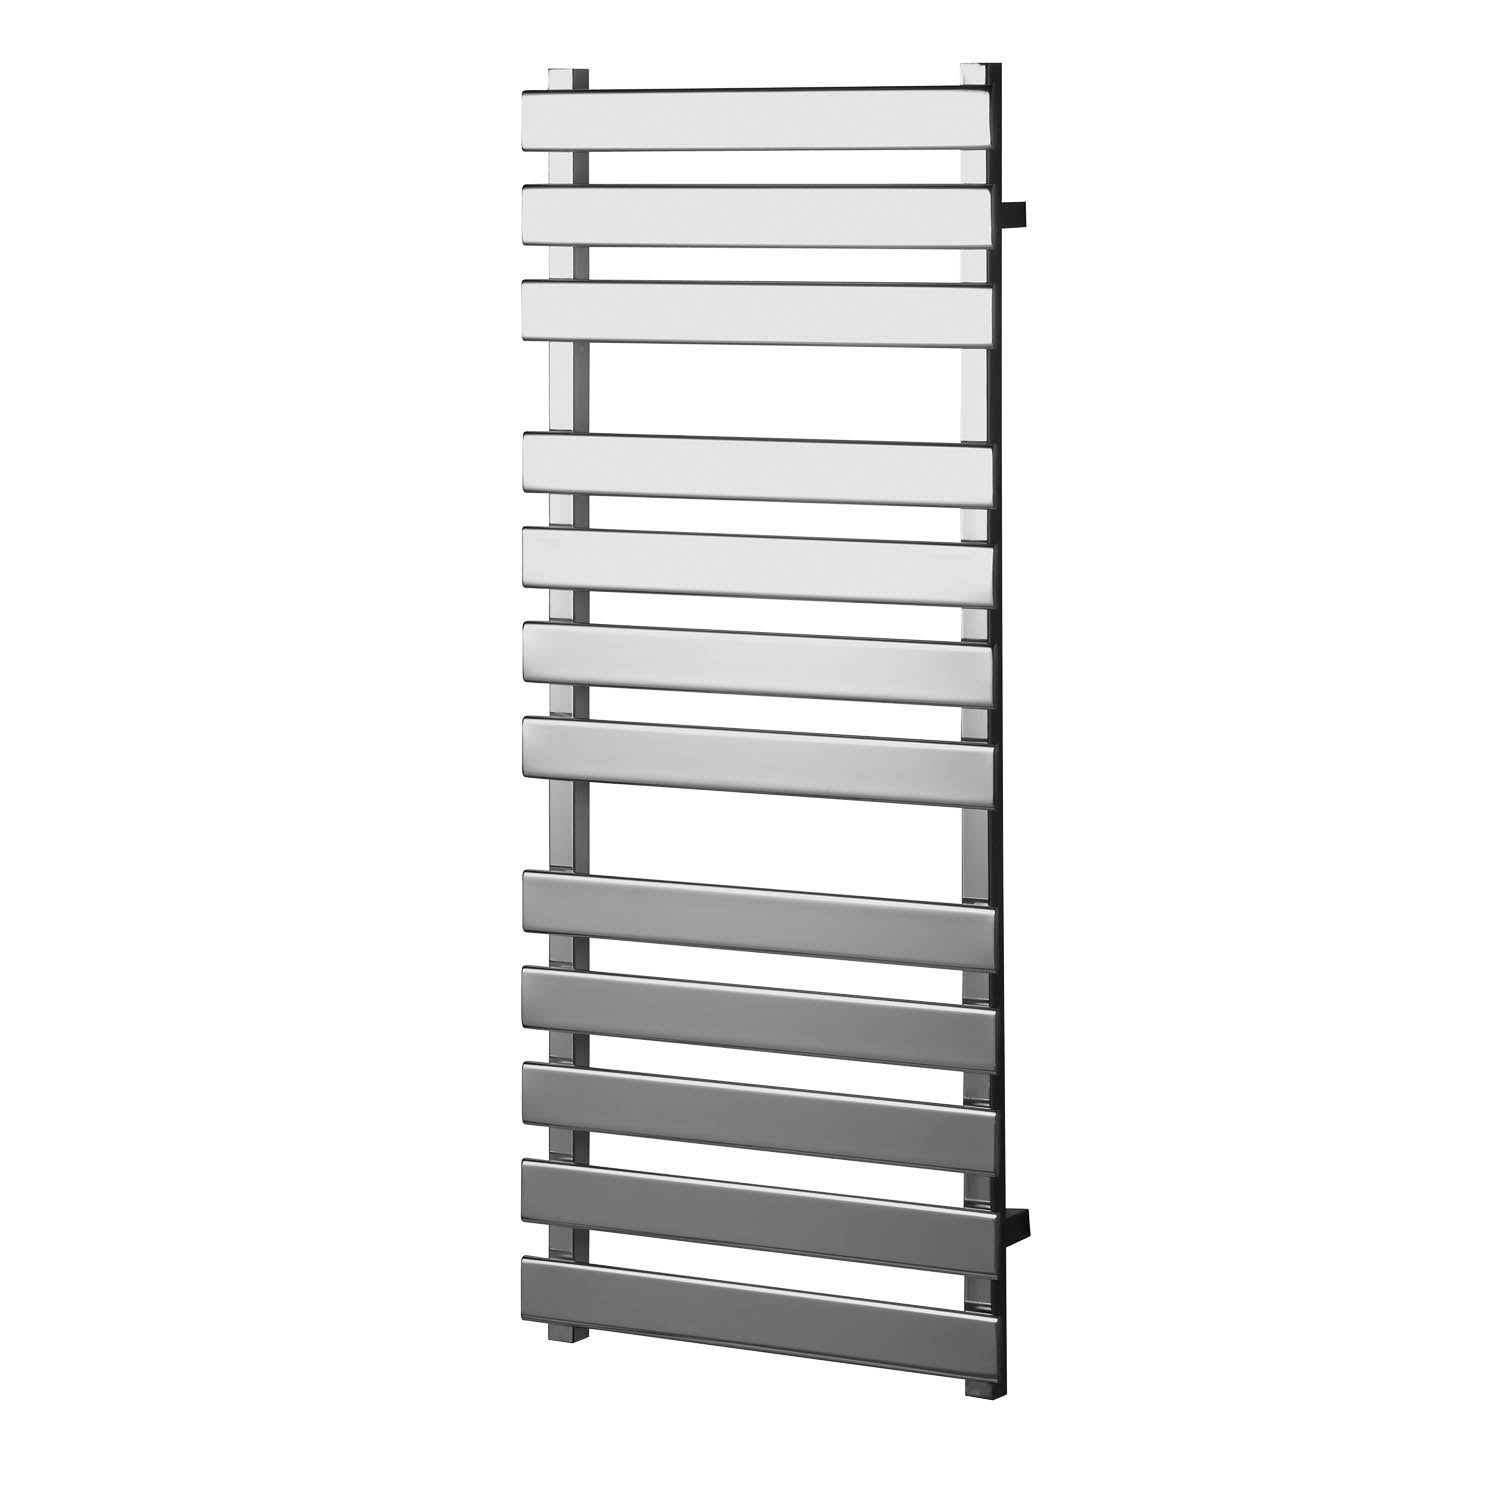 1200x500mm Consilio Anti-Scald Towel Rail with a chrome finish on a white background